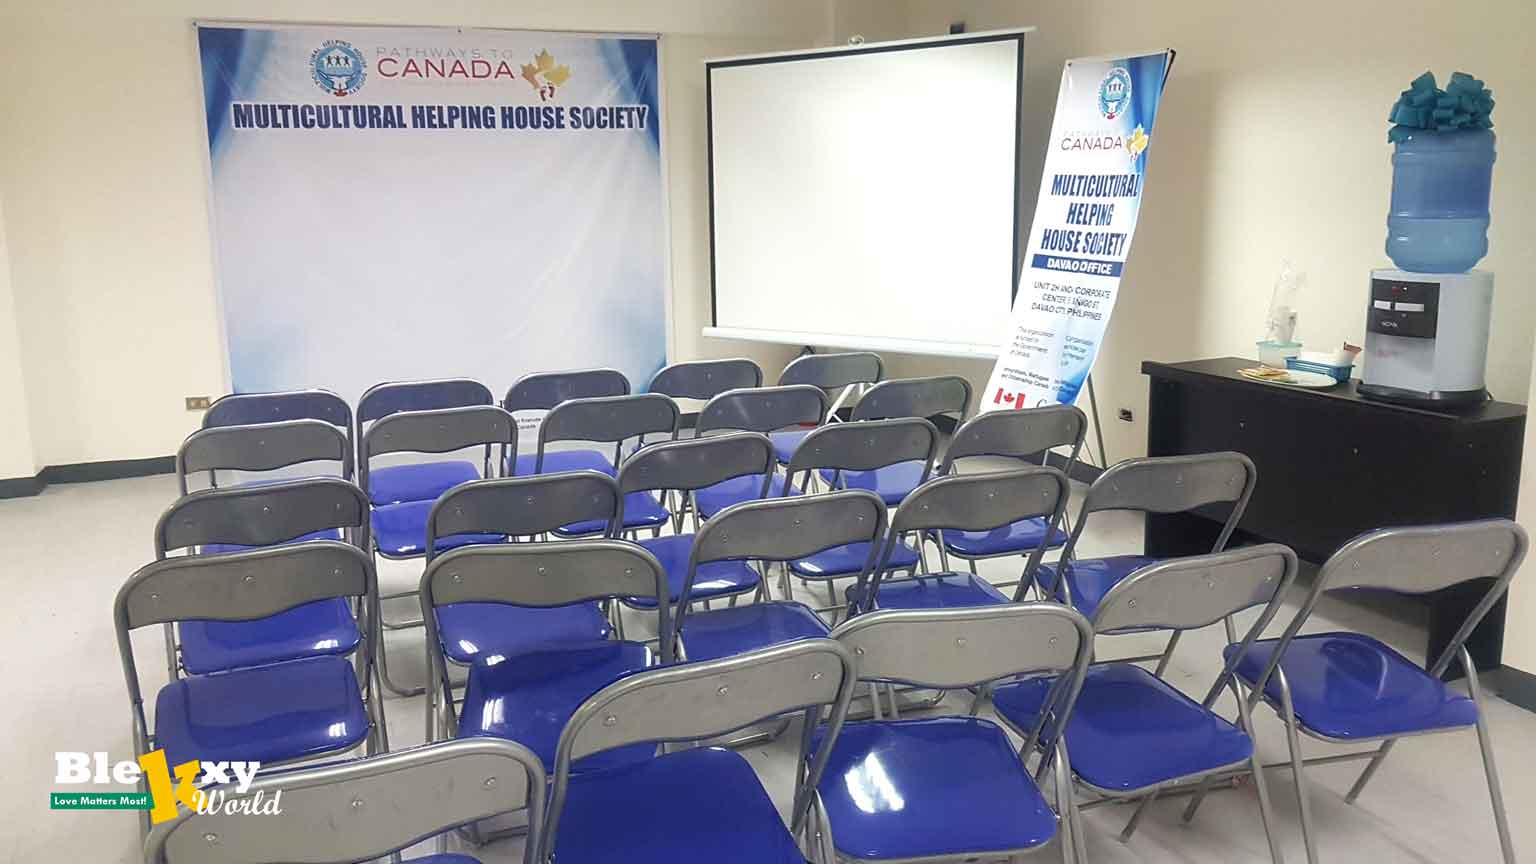 Session-Hall-Pathways-to-Canada-Davao